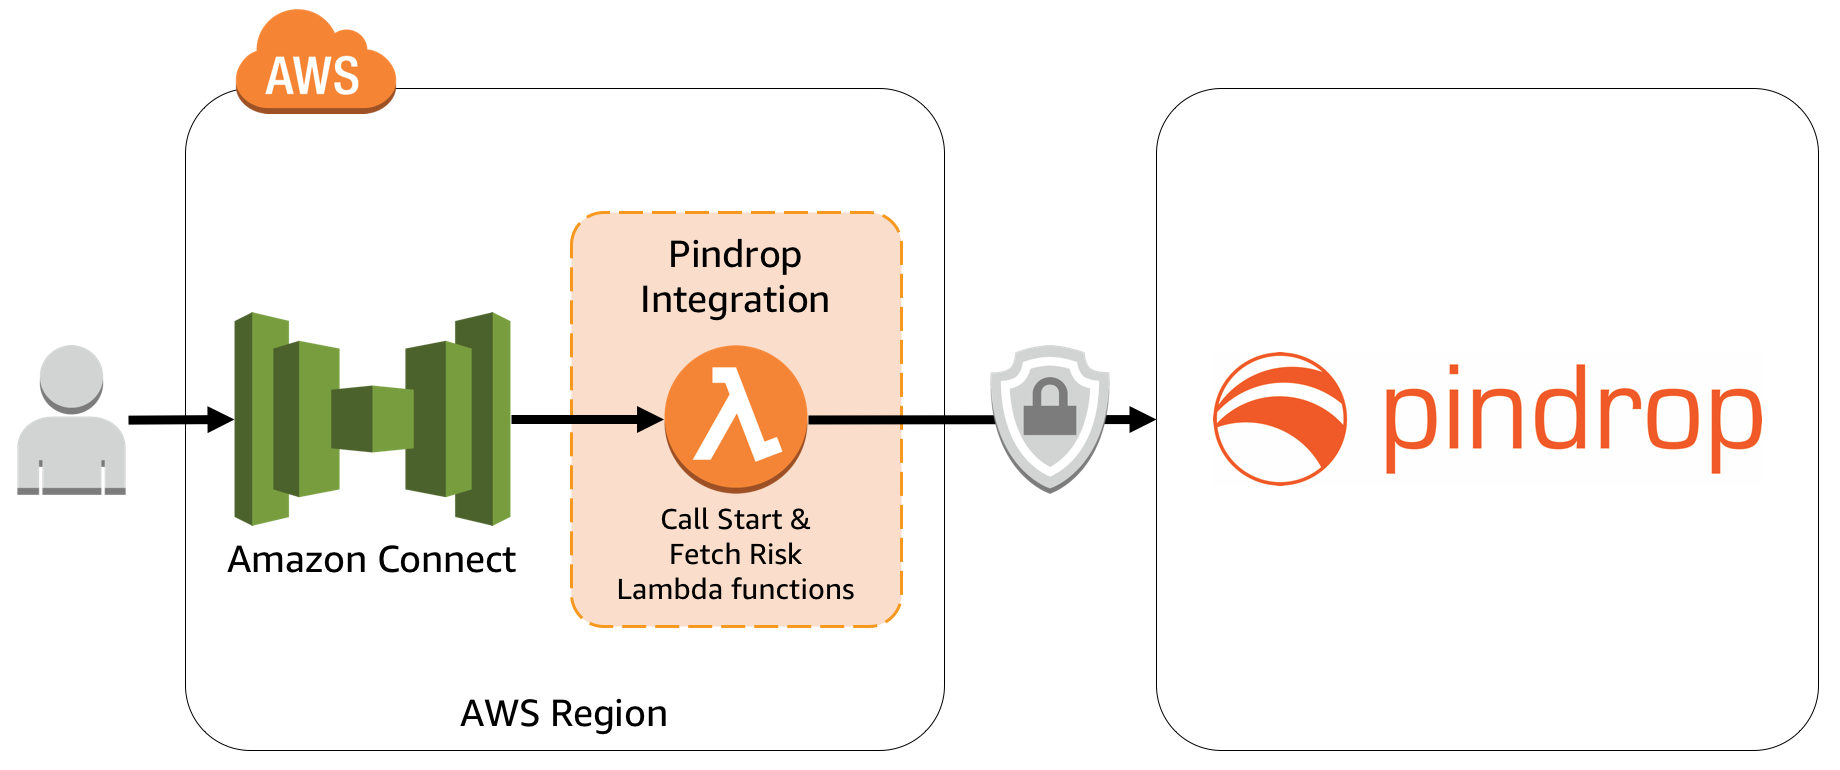 Pindrop - Amazon Connect integration